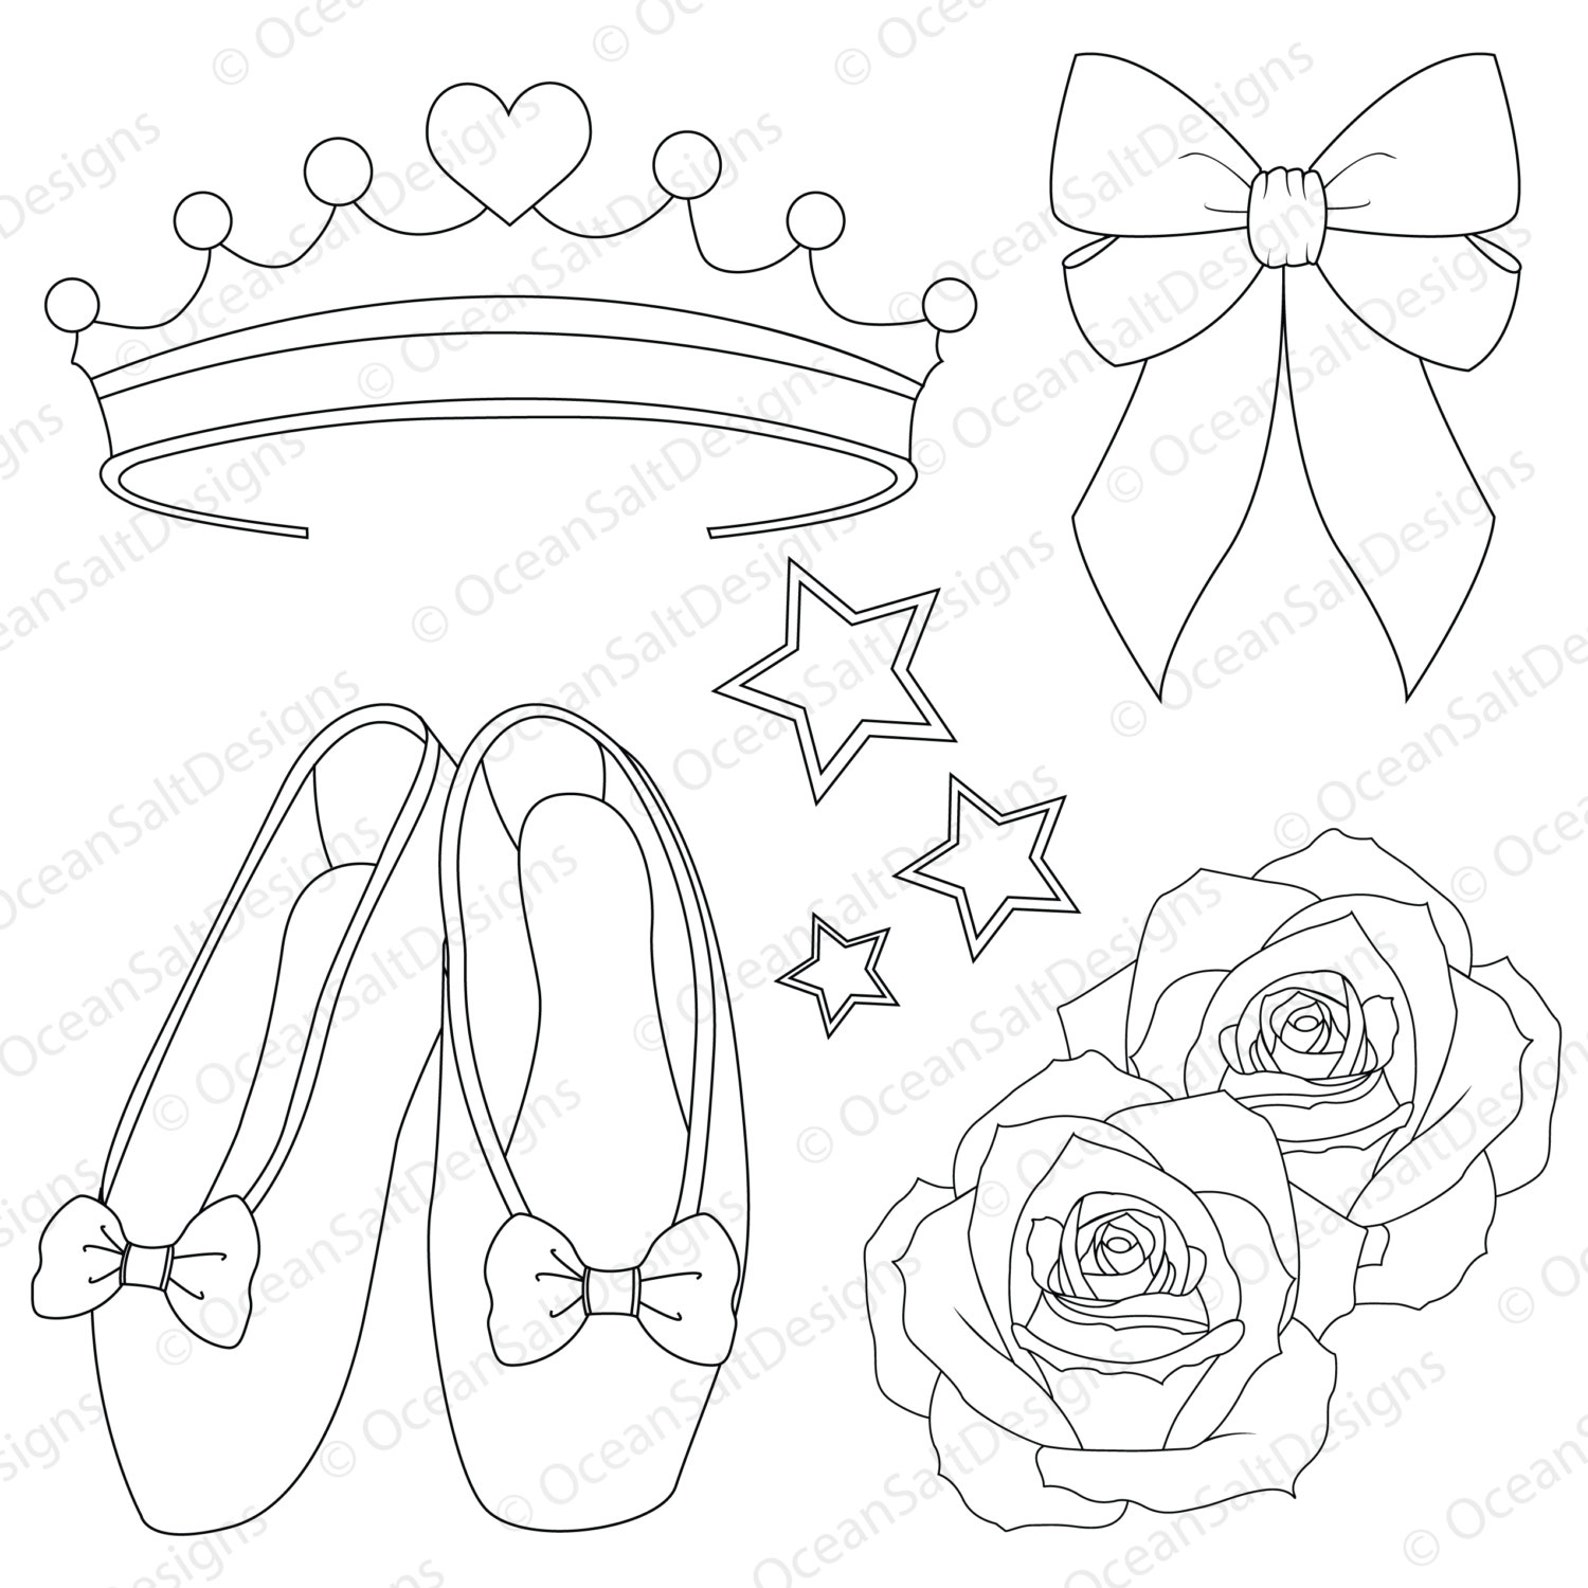 ballerina party clipart digital stamp ballet clipart digi stamp dancing image tutu ballet shoes ballerina invitation kids party